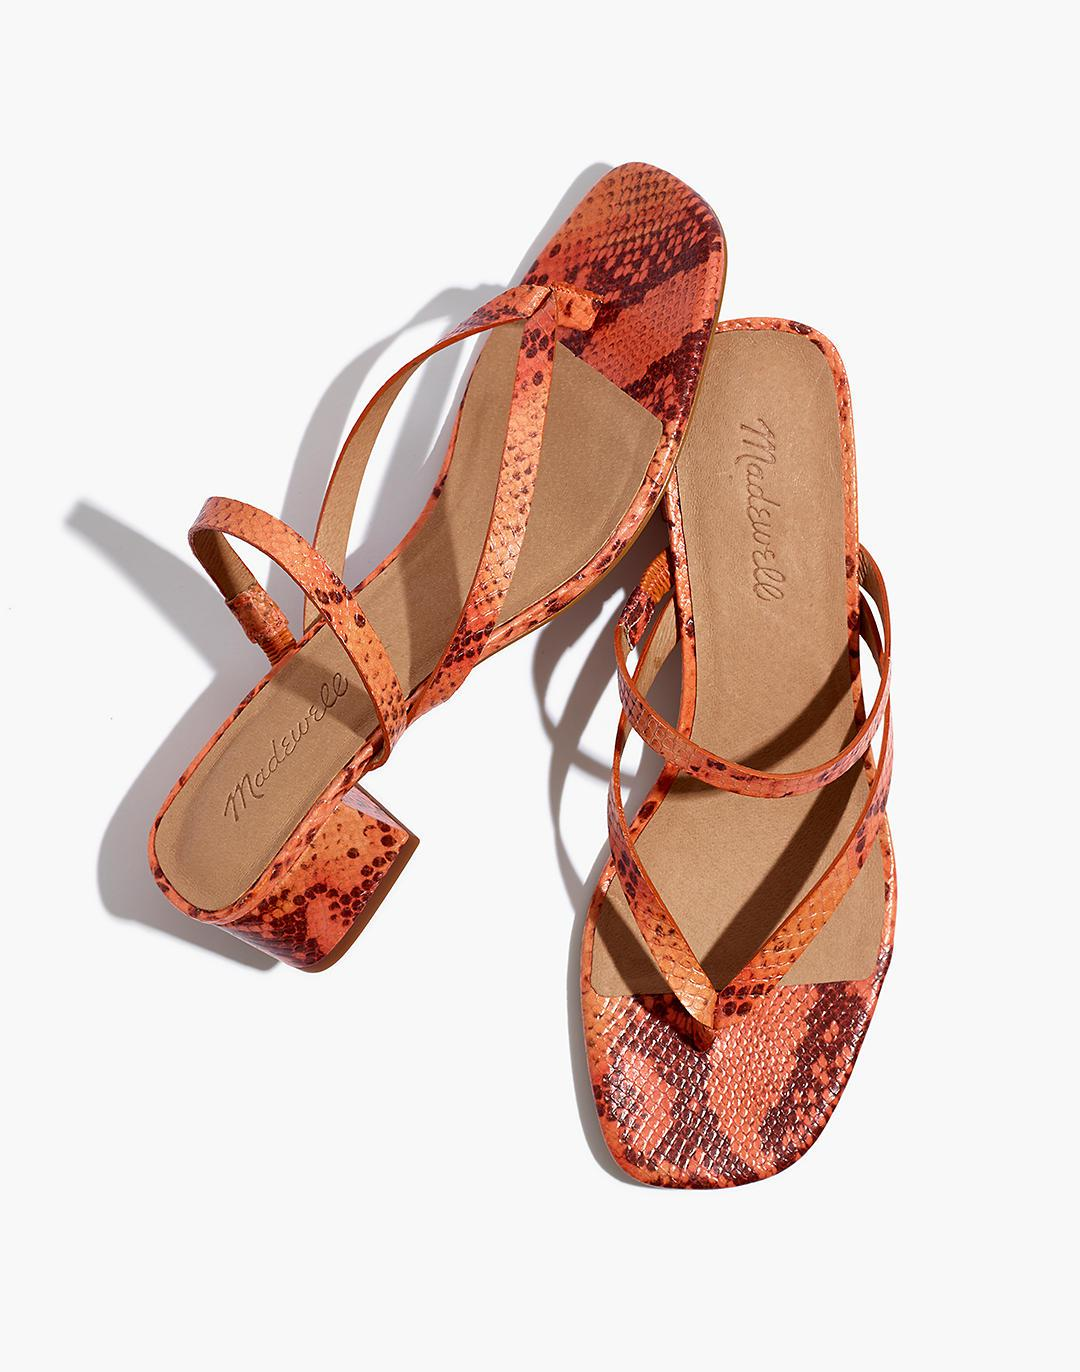 The Amber Sandal in Snake Embossed Leather